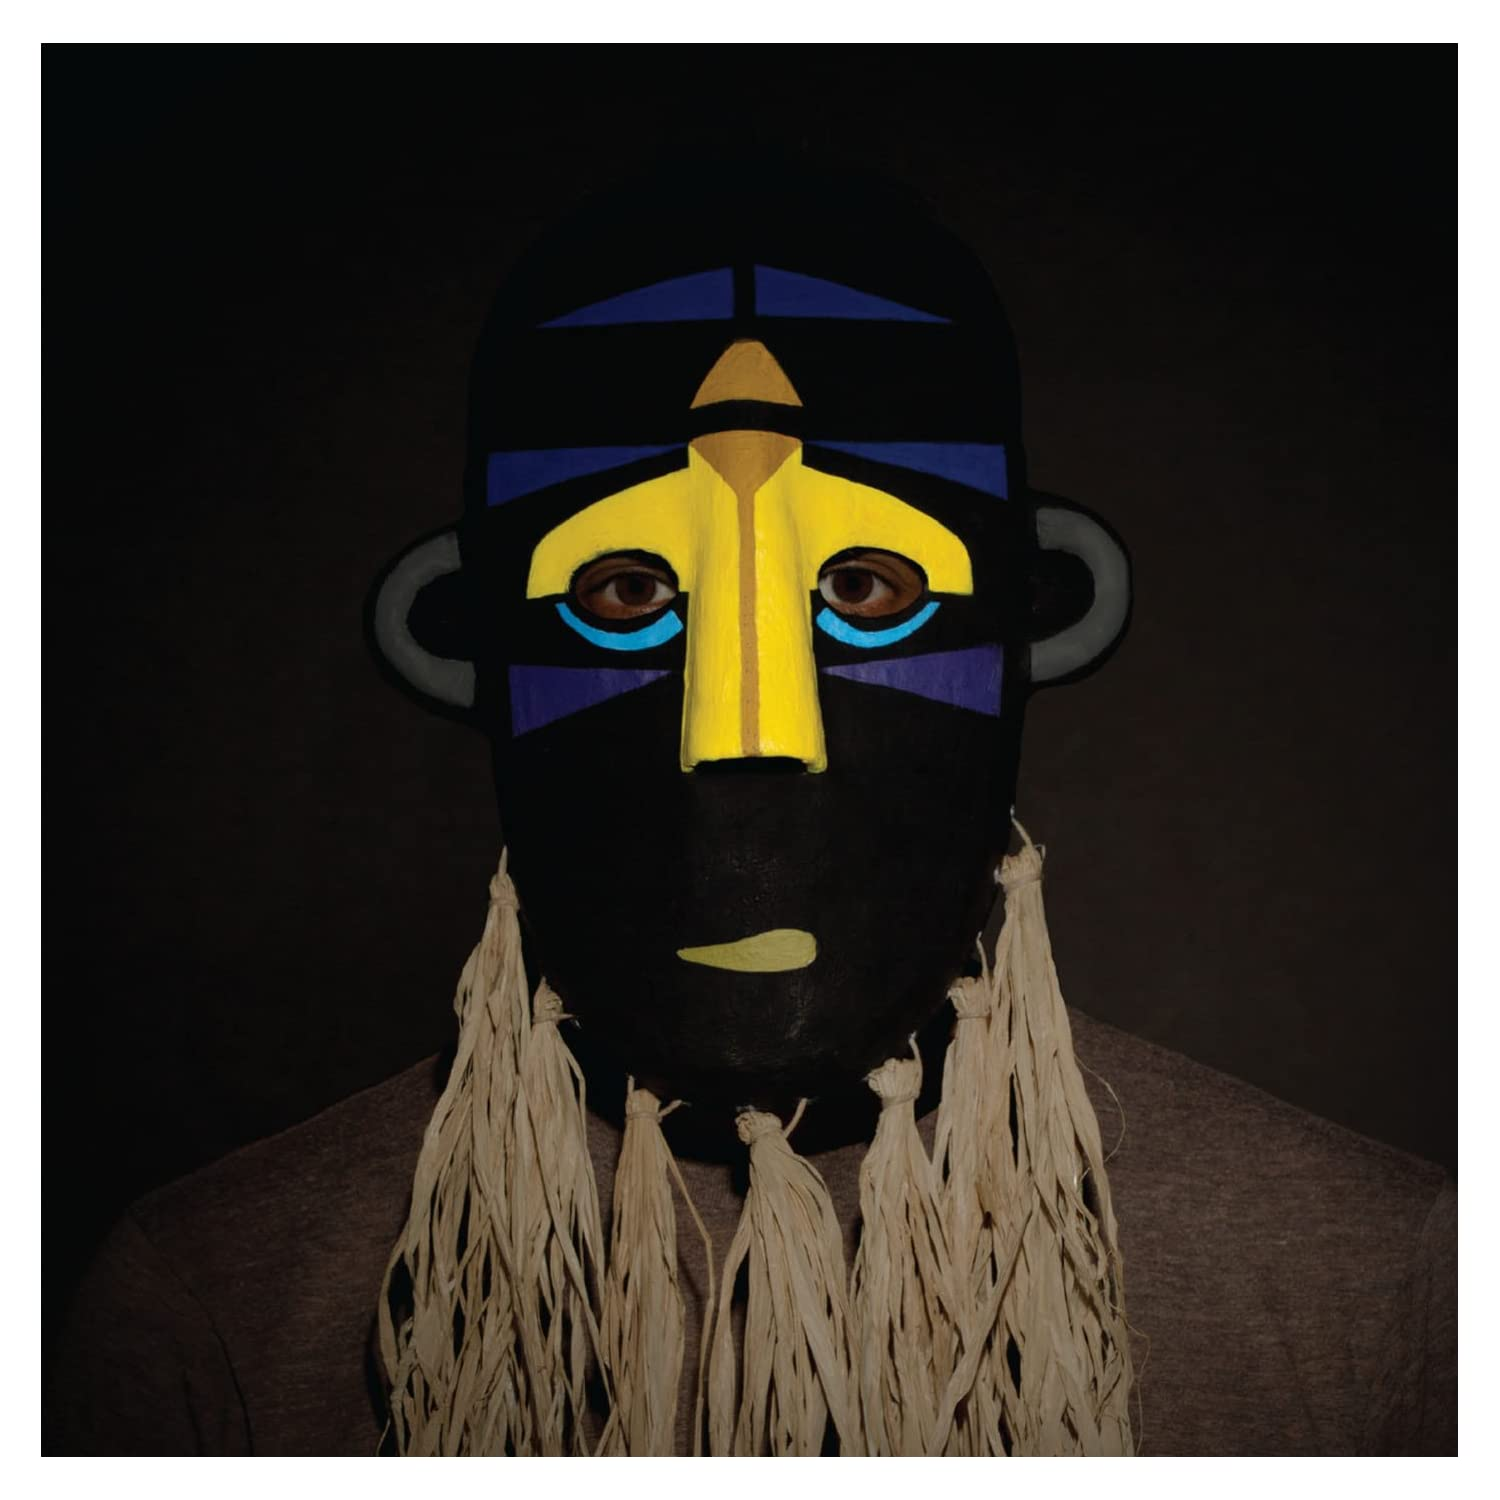 Week 140 hold on feat sampha by sbtrkt beautiful song of the sampha by sbtrkt mightylinksfo